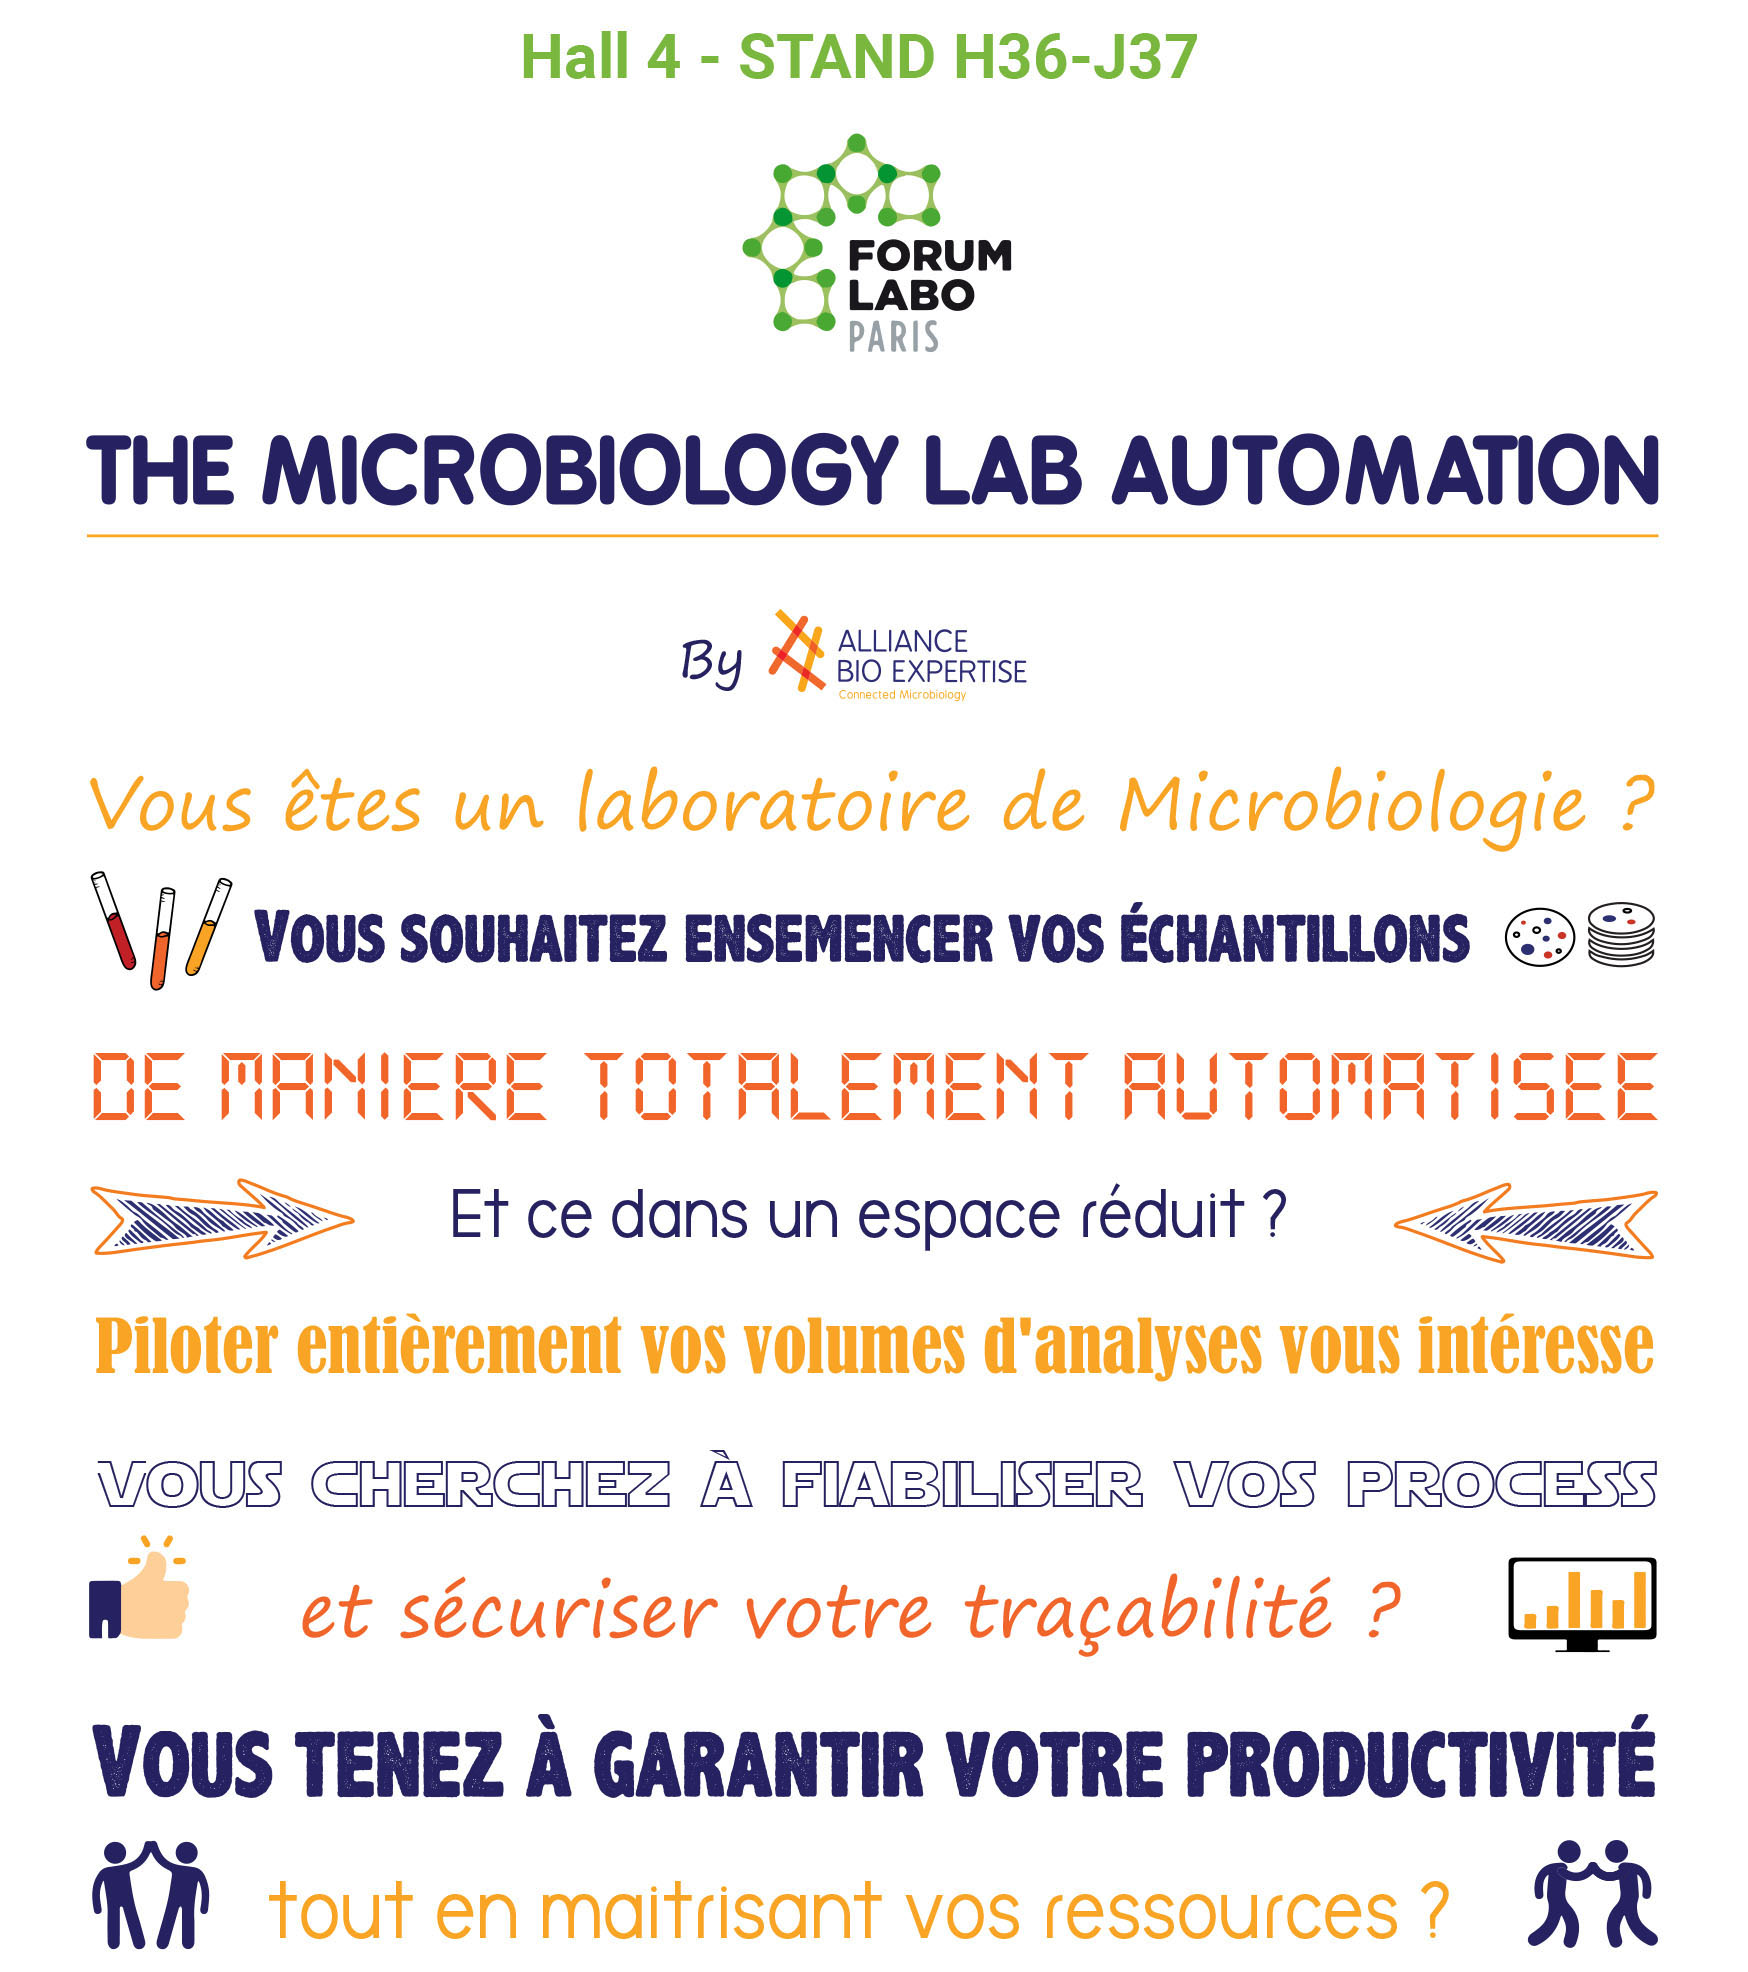 the microbiology lab automation FORUM LABO